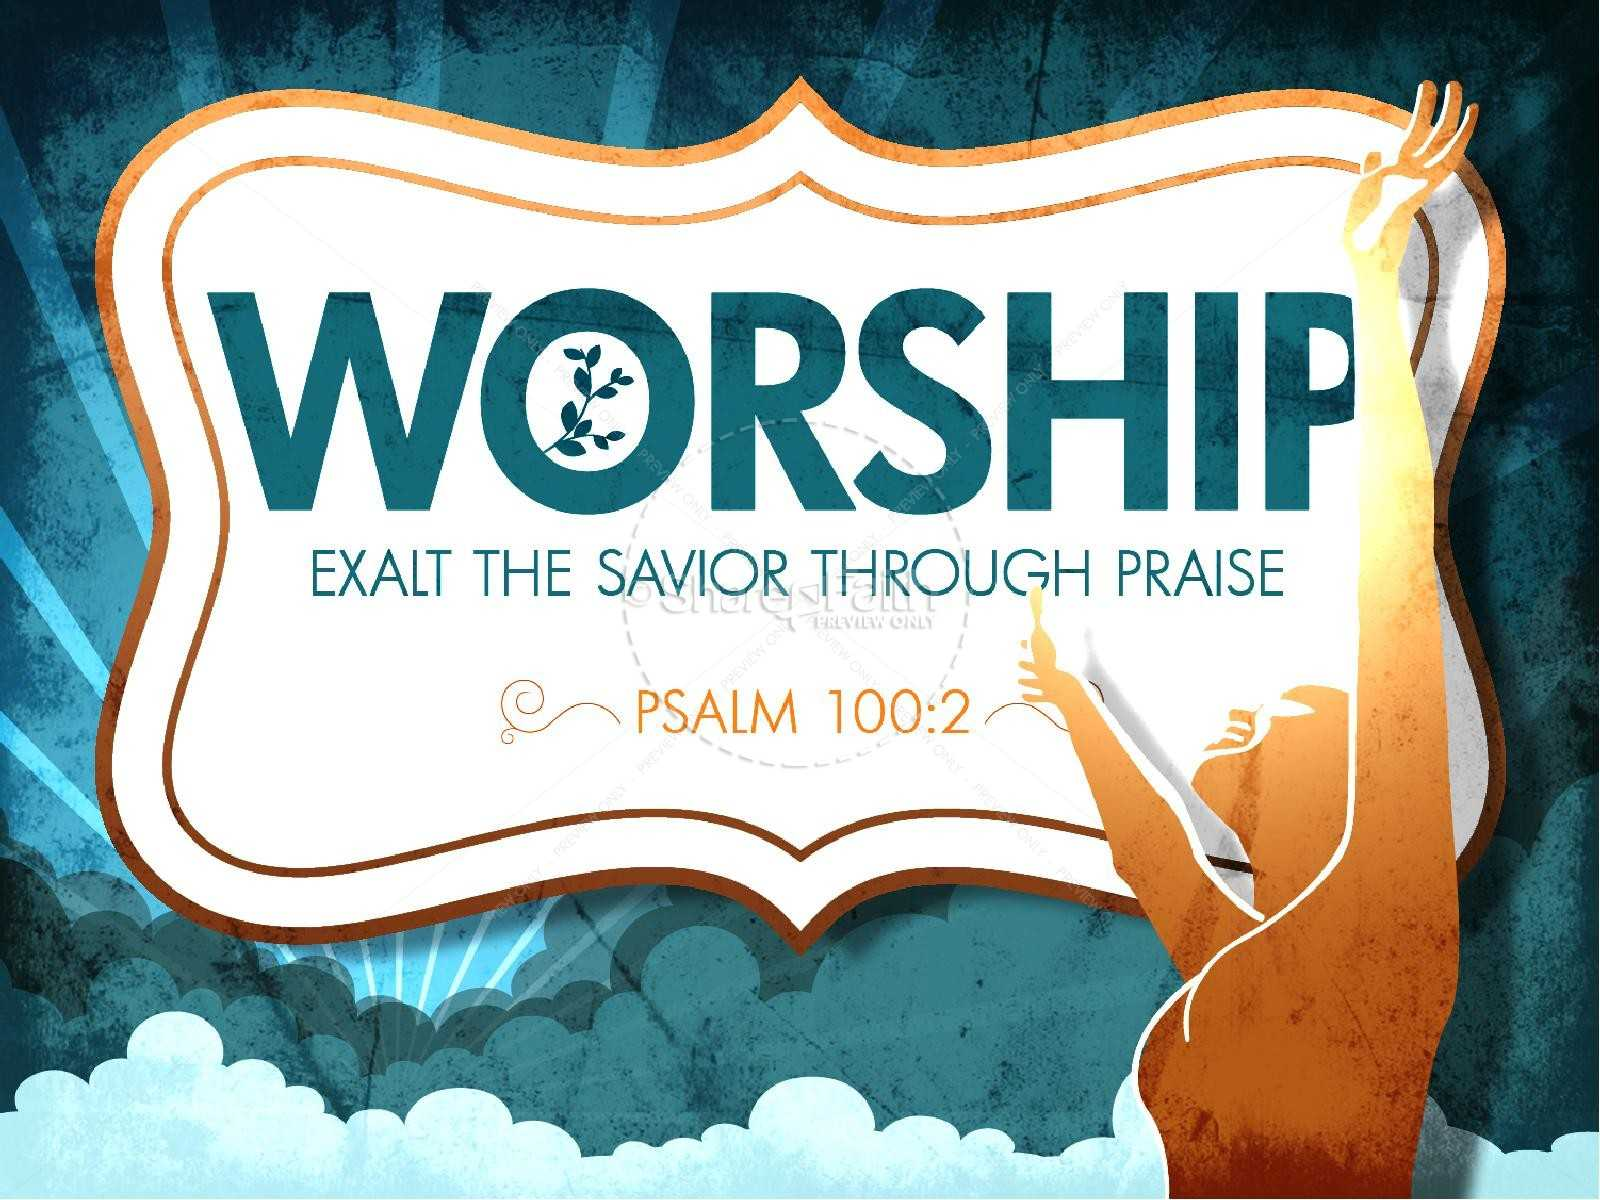 Worship Powerpoint Church Template   Powerpoint Sermons With Regard To Praise And Worship Powerpoint Templates